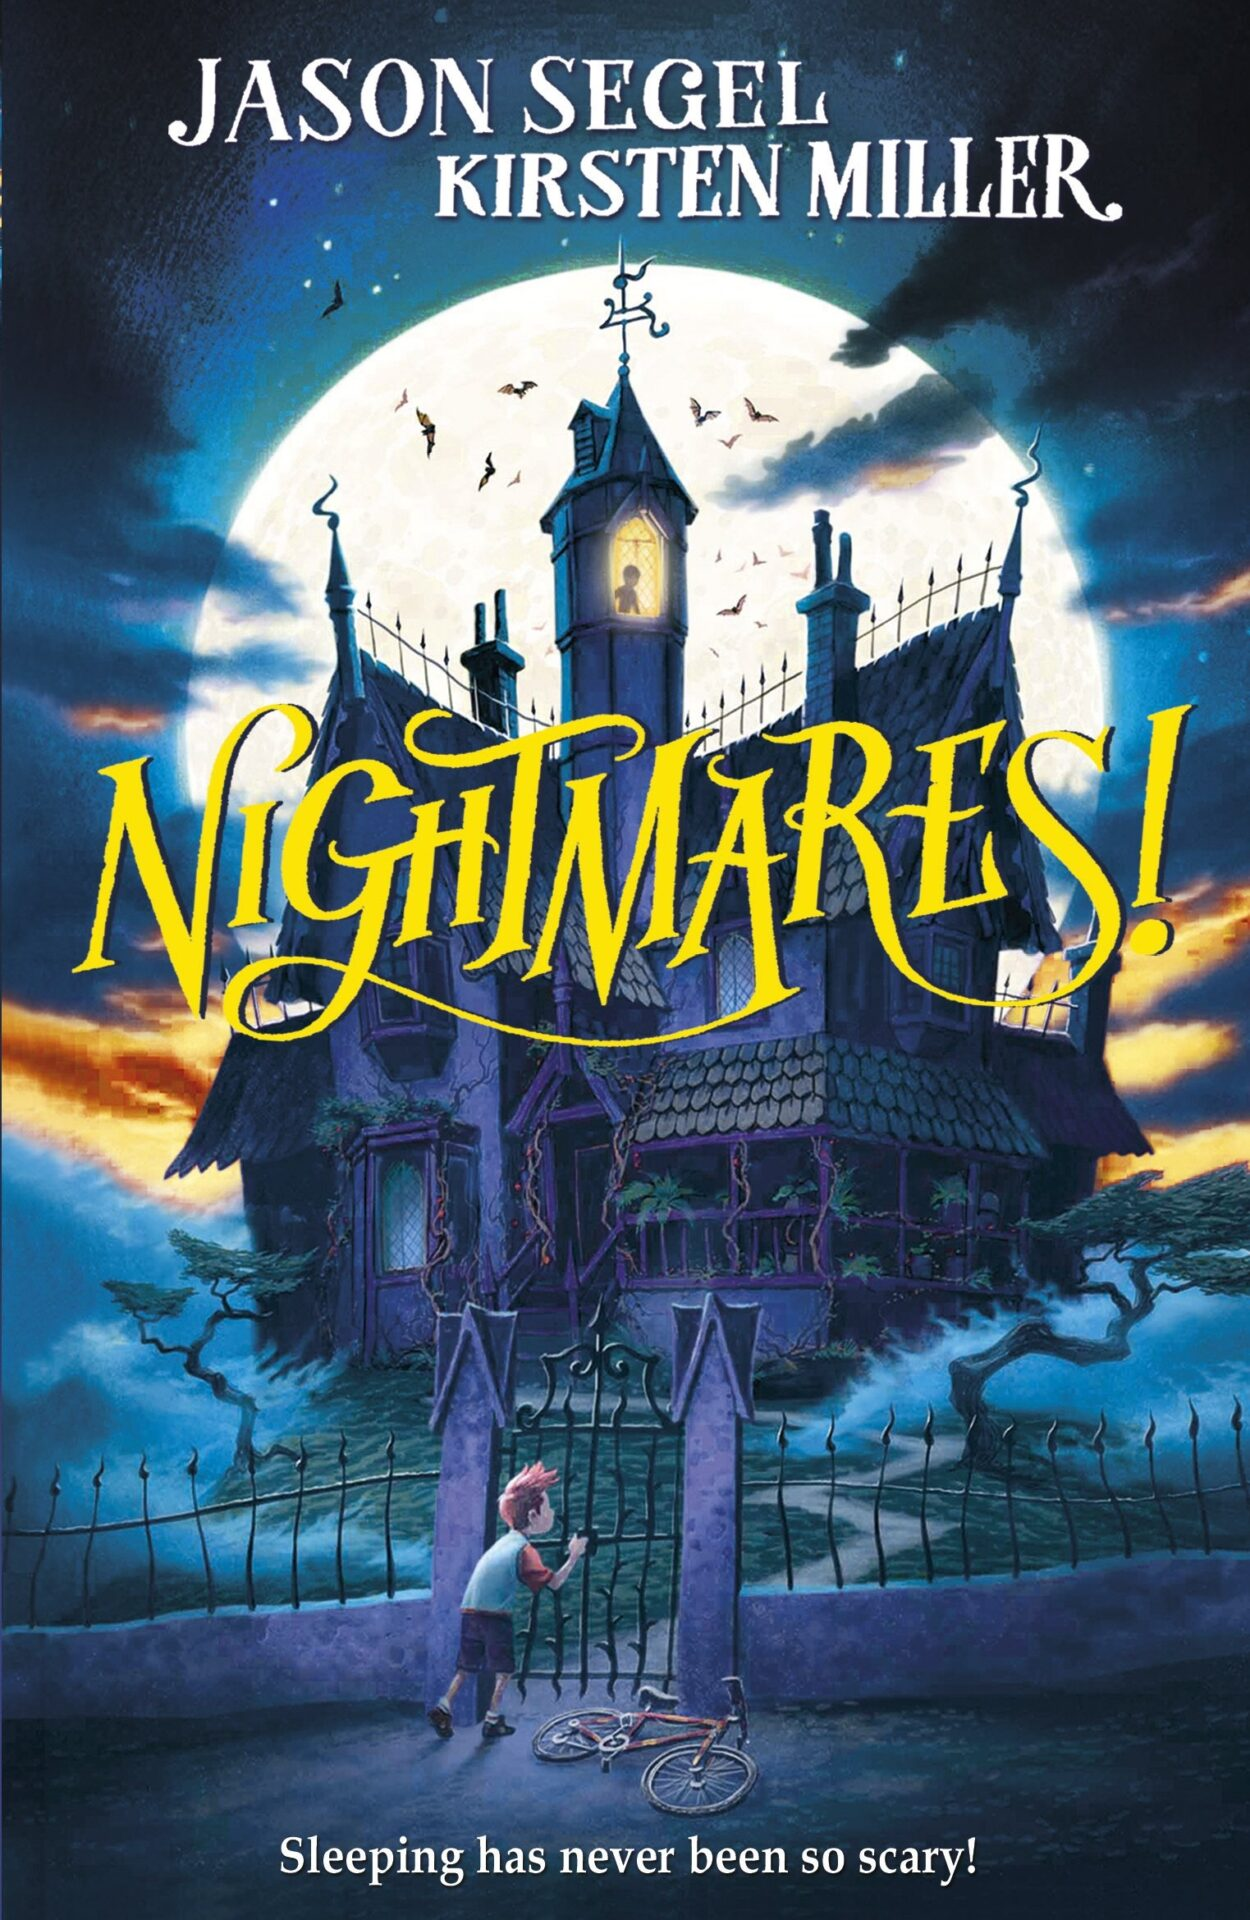 Nightmares! book for 10 year old kids